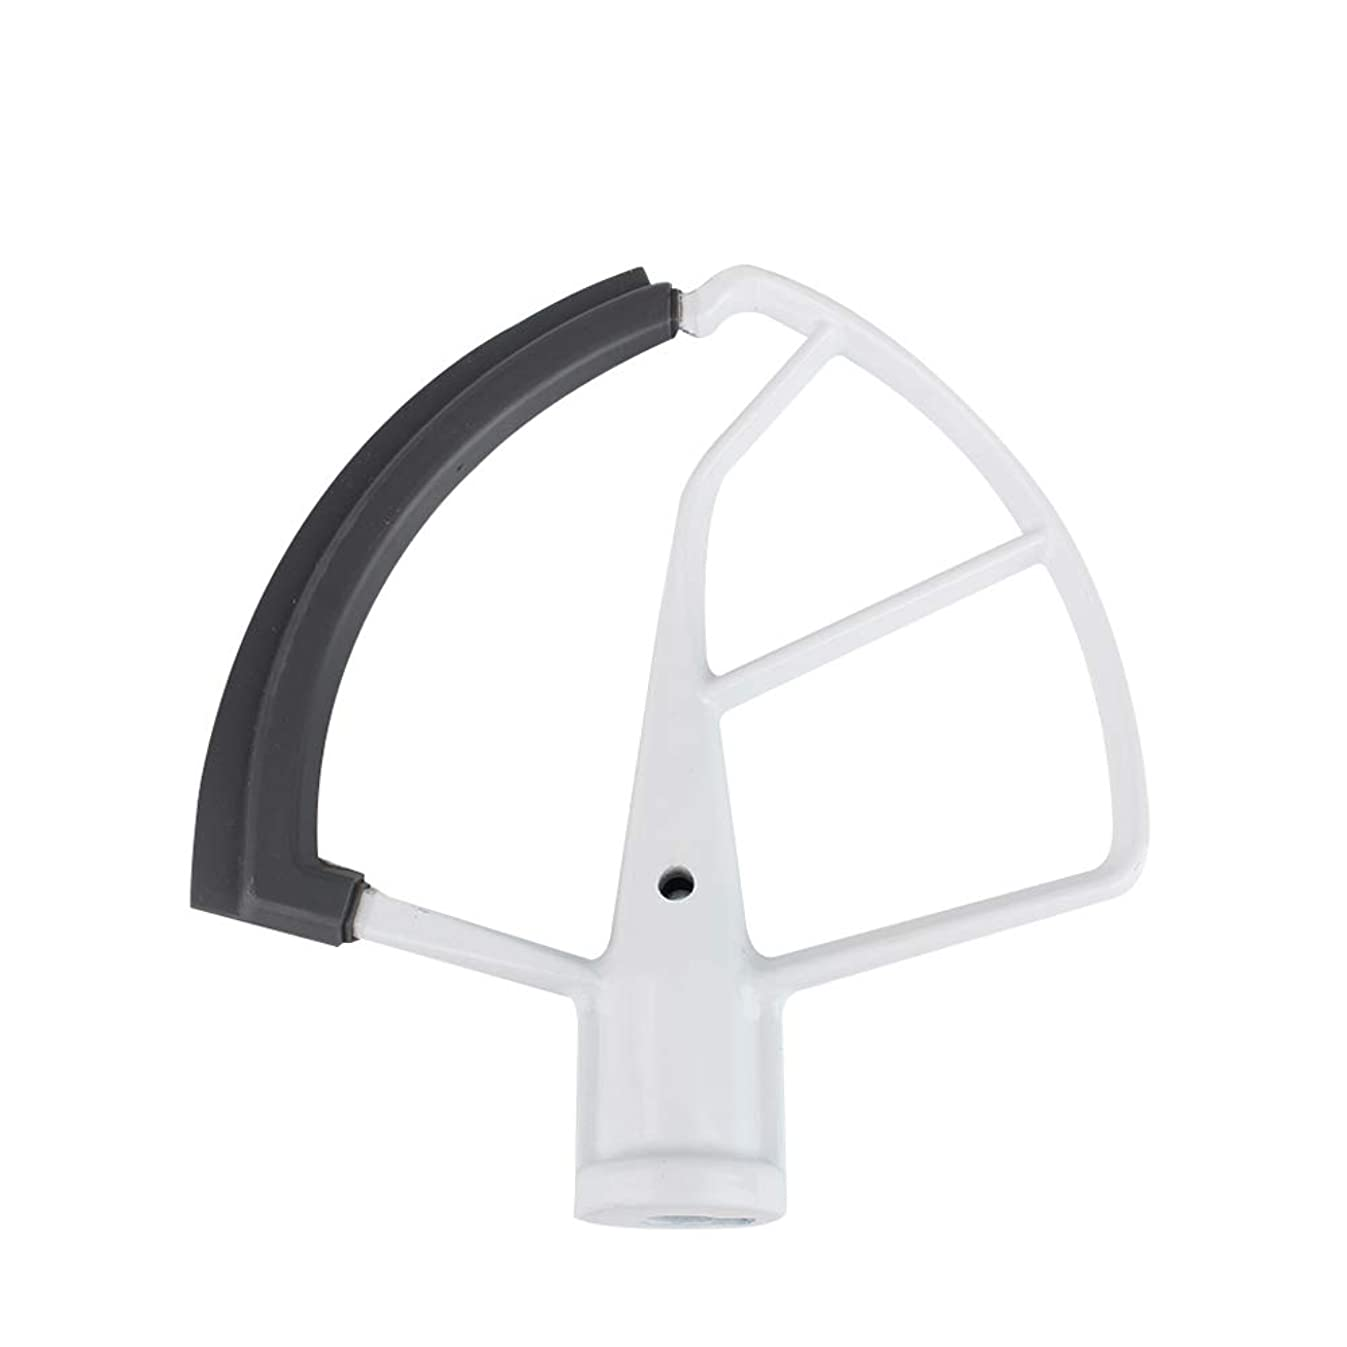 Flex Edge Beater Flat Beater blade with Silicone Edges For KitchenAid Bowl Tilt-Head Stand Mixer 5.5-6 Quart KD2661X